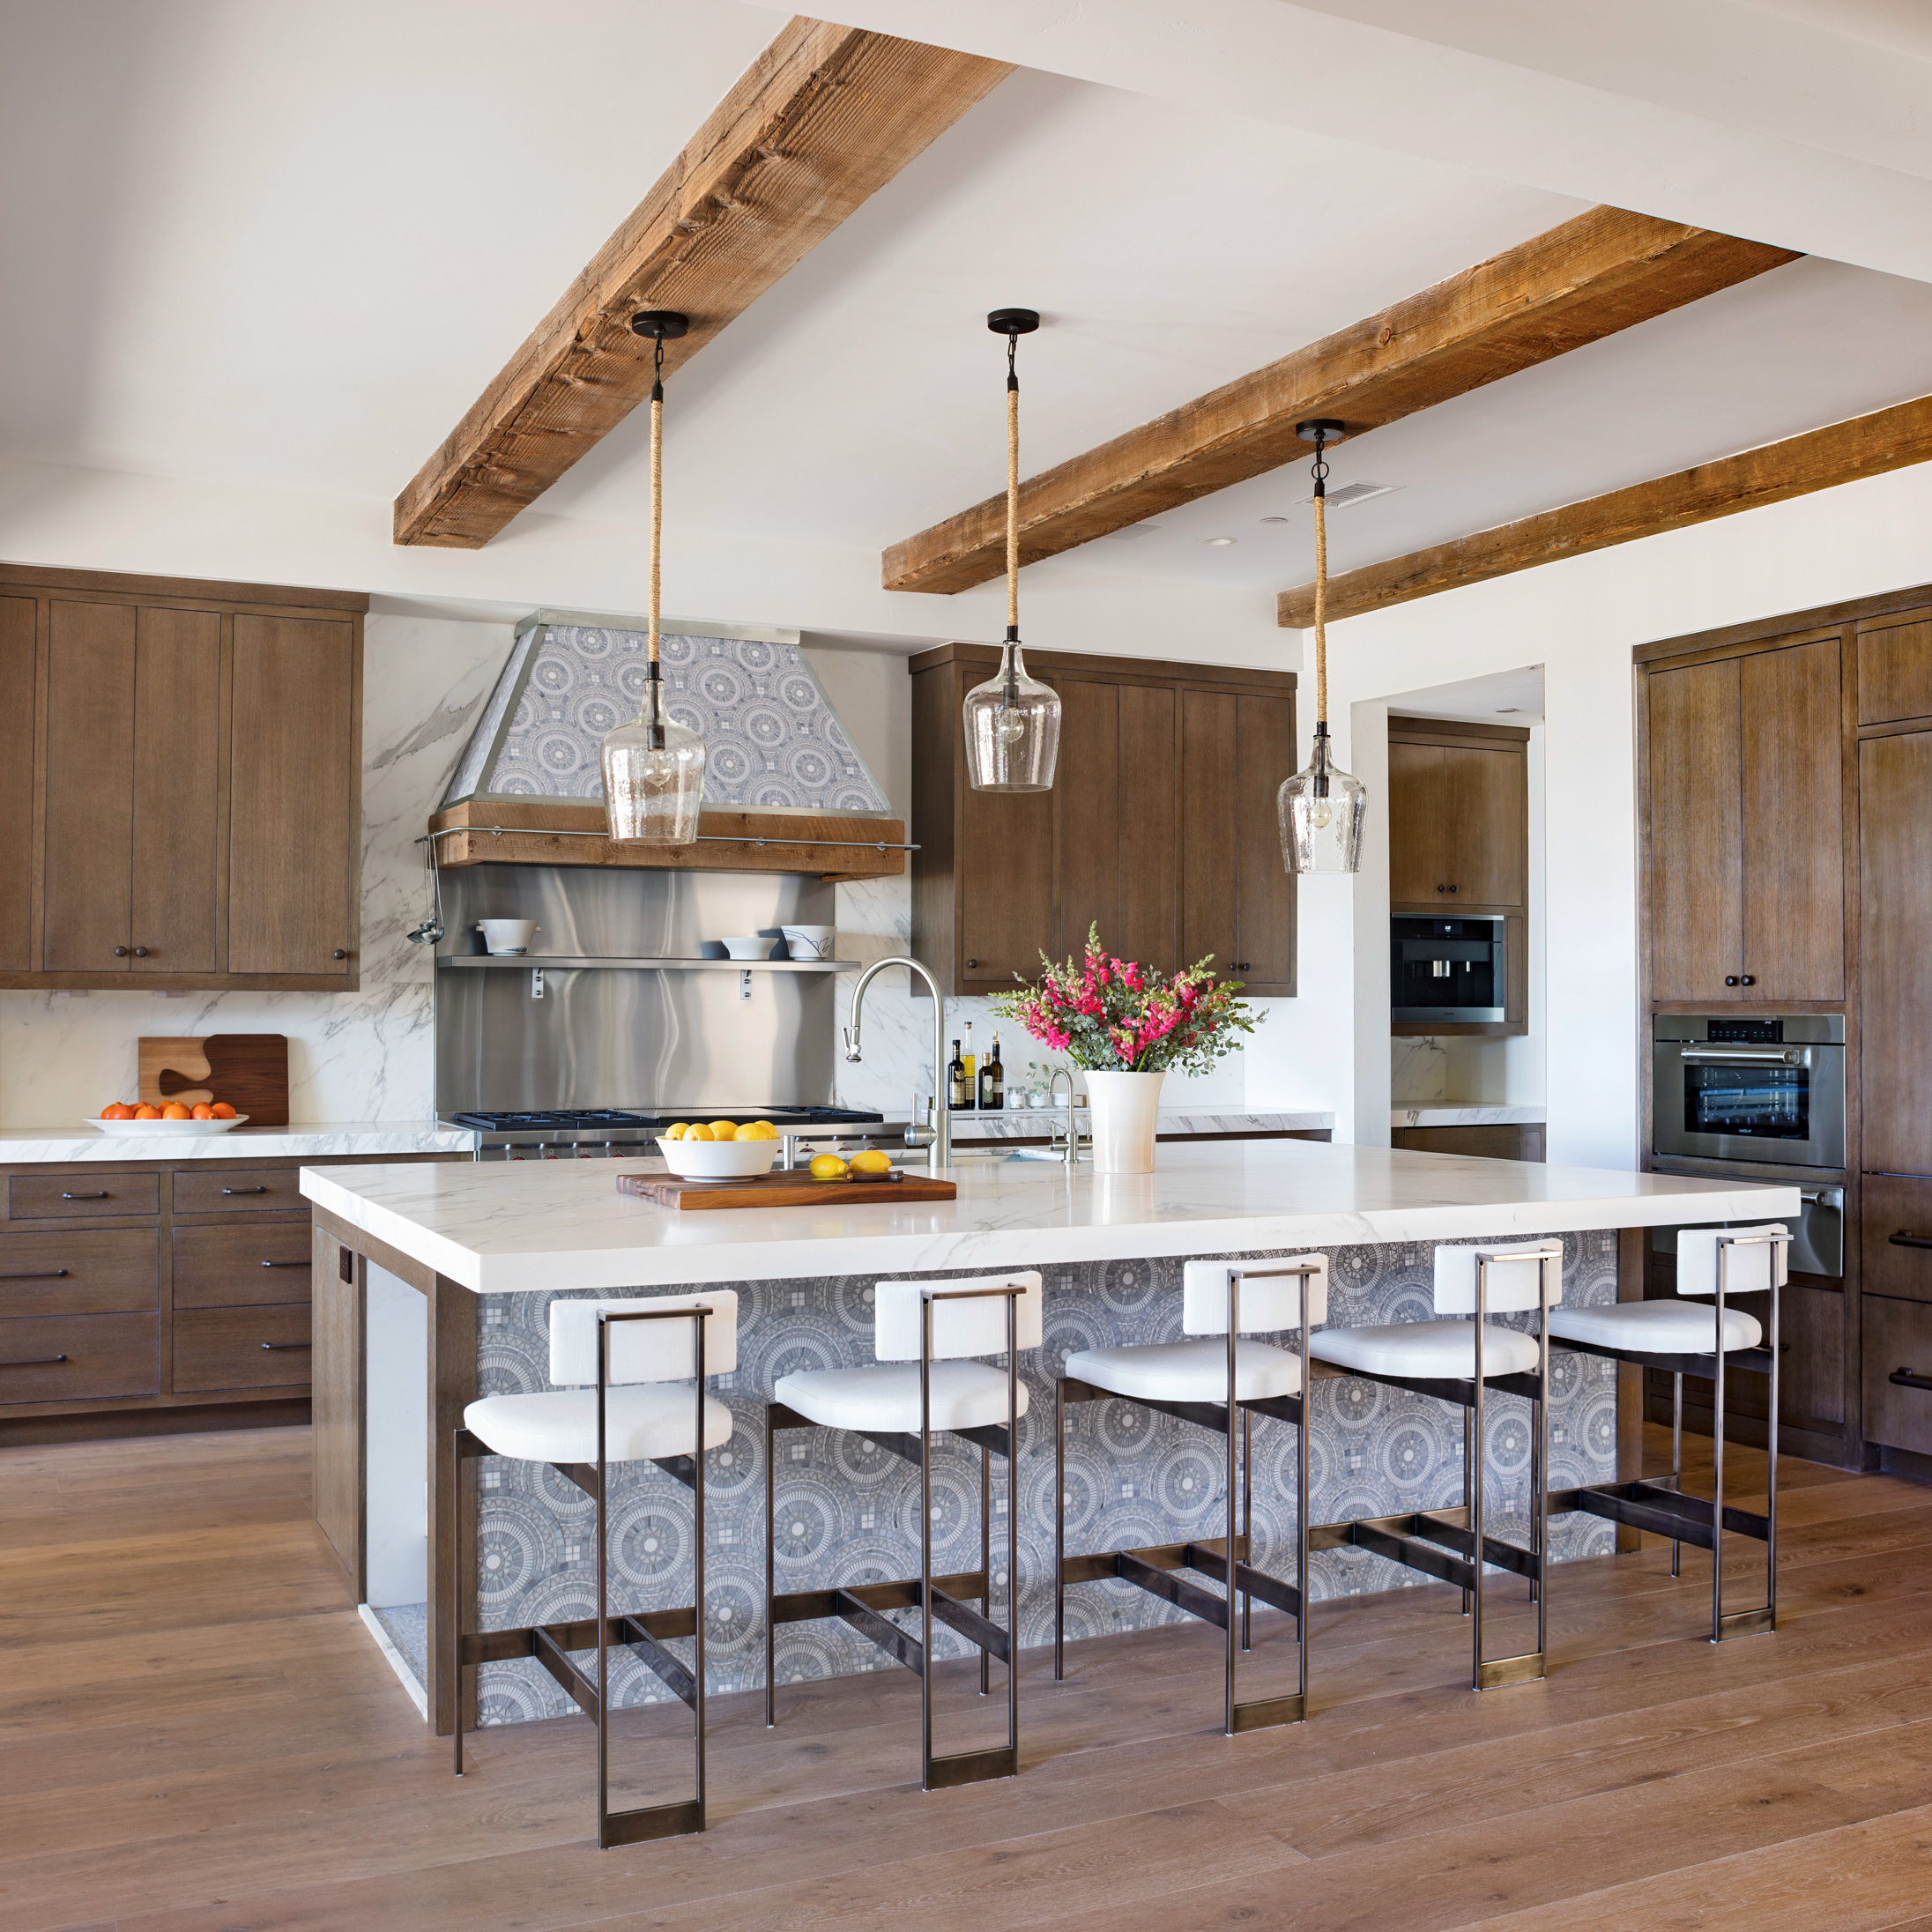 Kitchen Counter And Stools The Top 25 Kitchen Color Schemes For A Look You Ll Love Forever